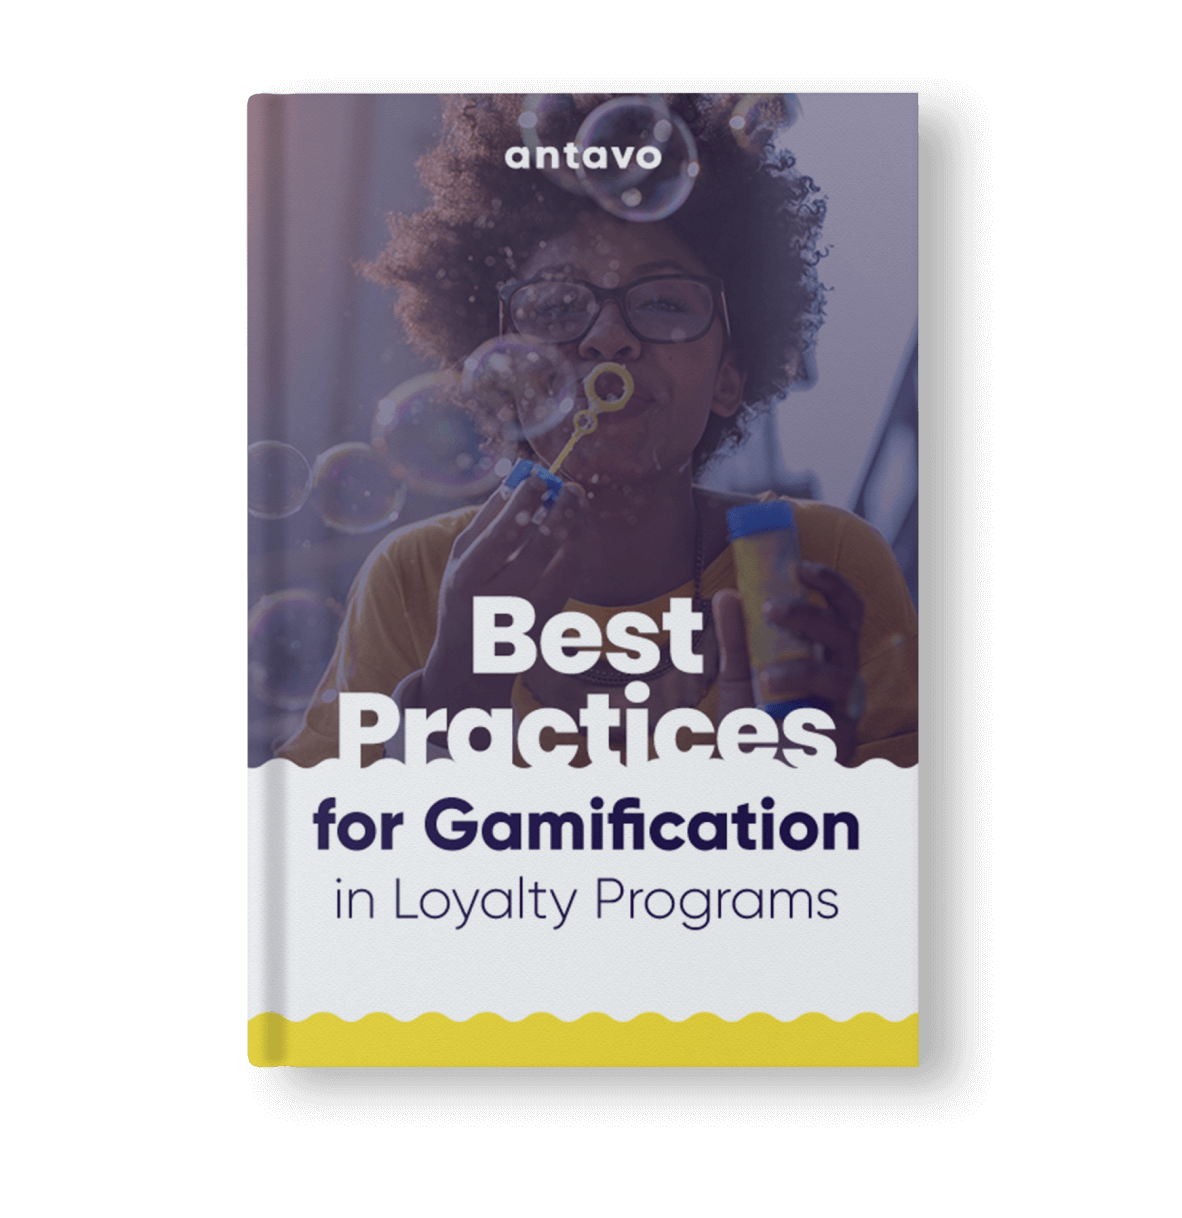 Antavo's Ebook: Best Practices for Gamification in Loyalty Programs